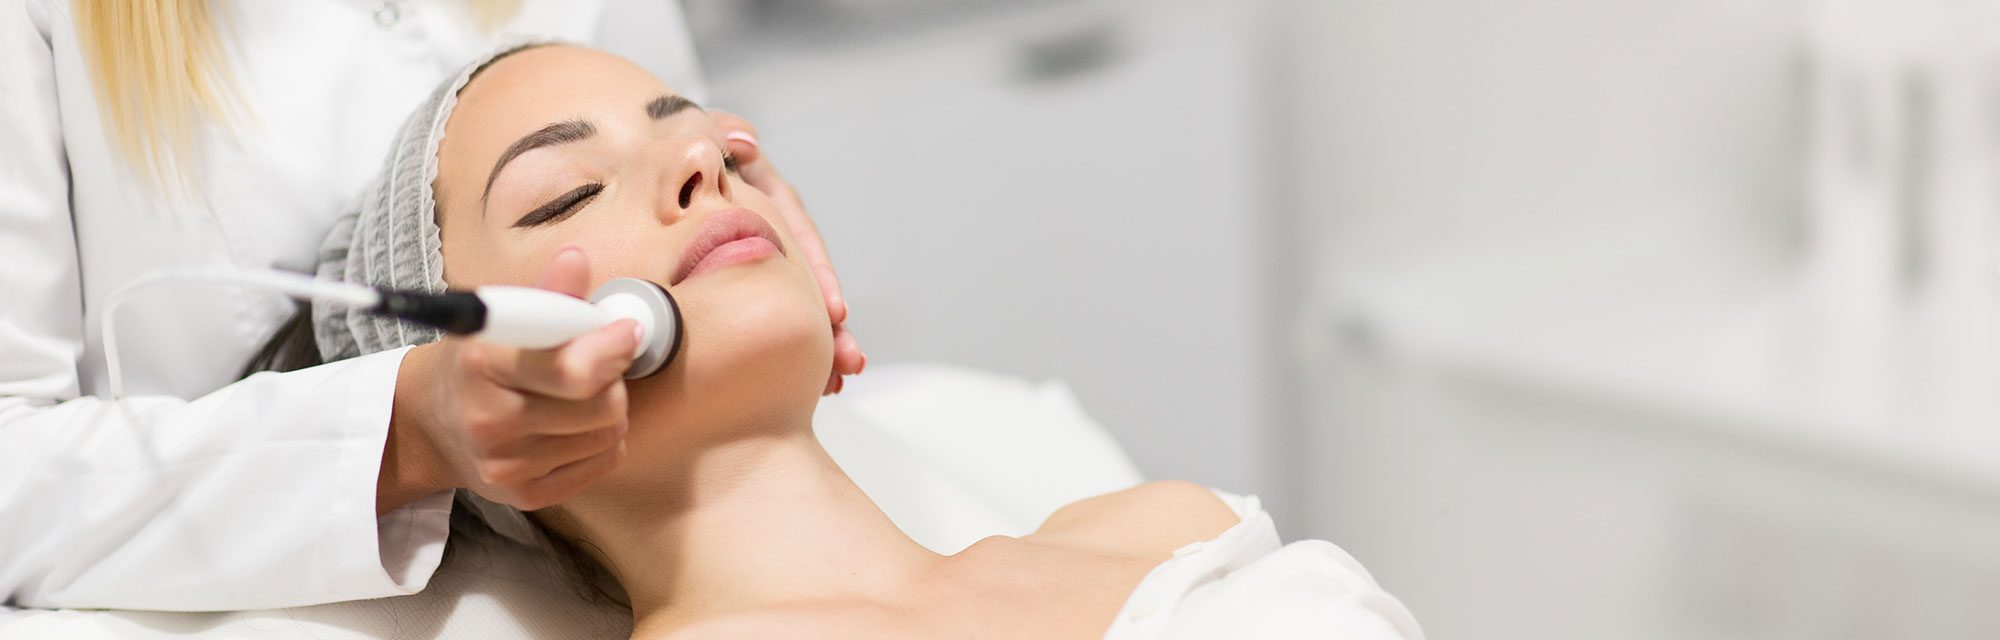 Laser Hair Reduction, Skin Rejuvenation, and other Ablative and Non-Ablative lasers for the skin and Body